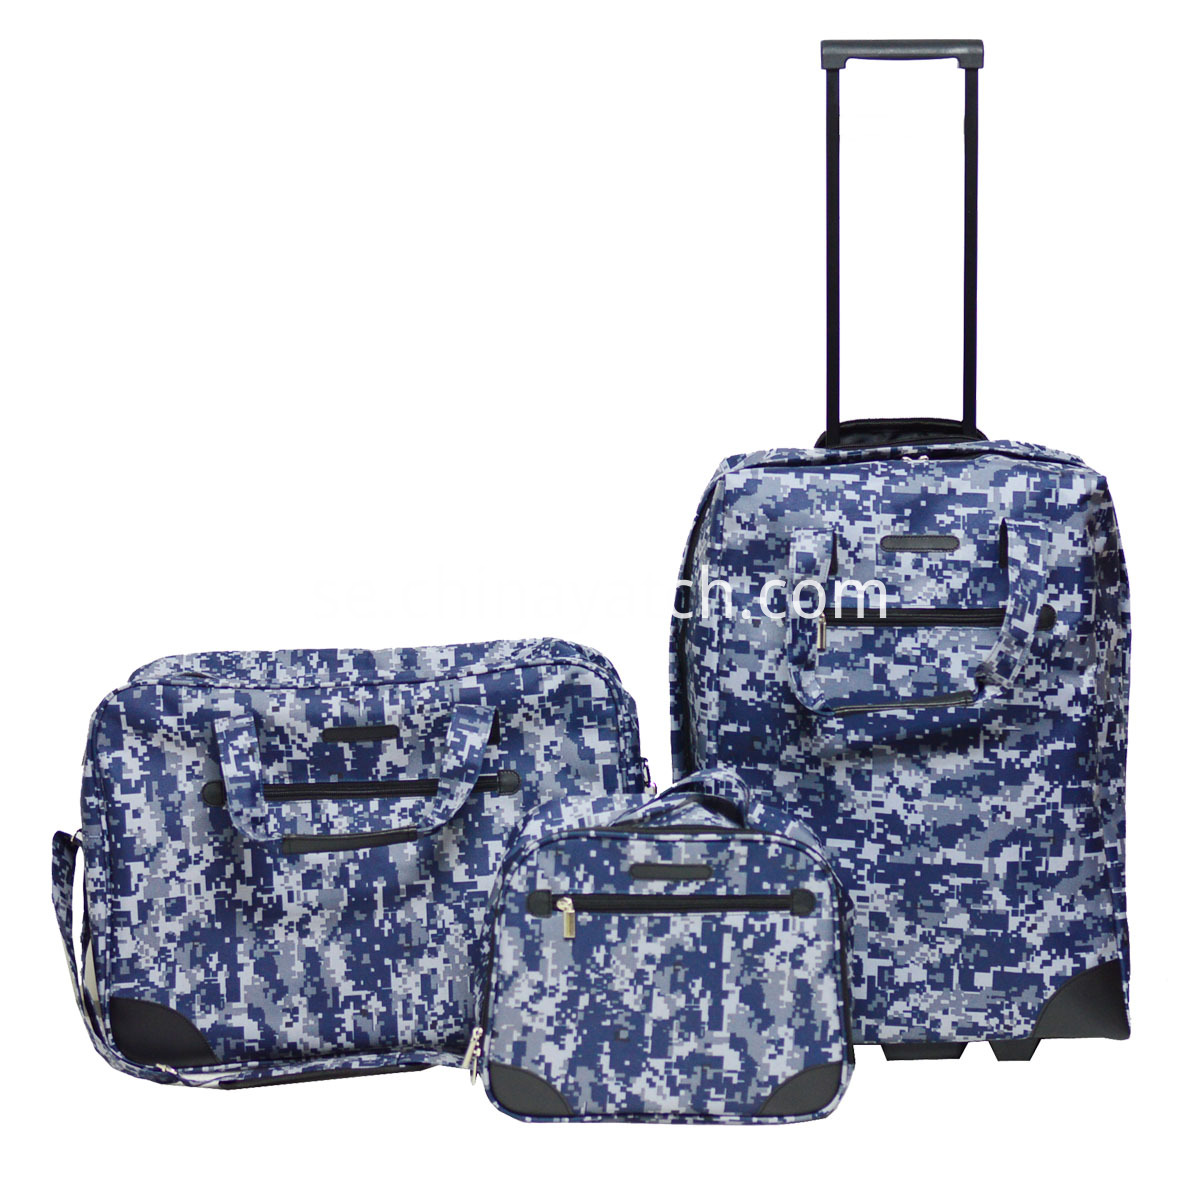 600D Travel Trolley Case